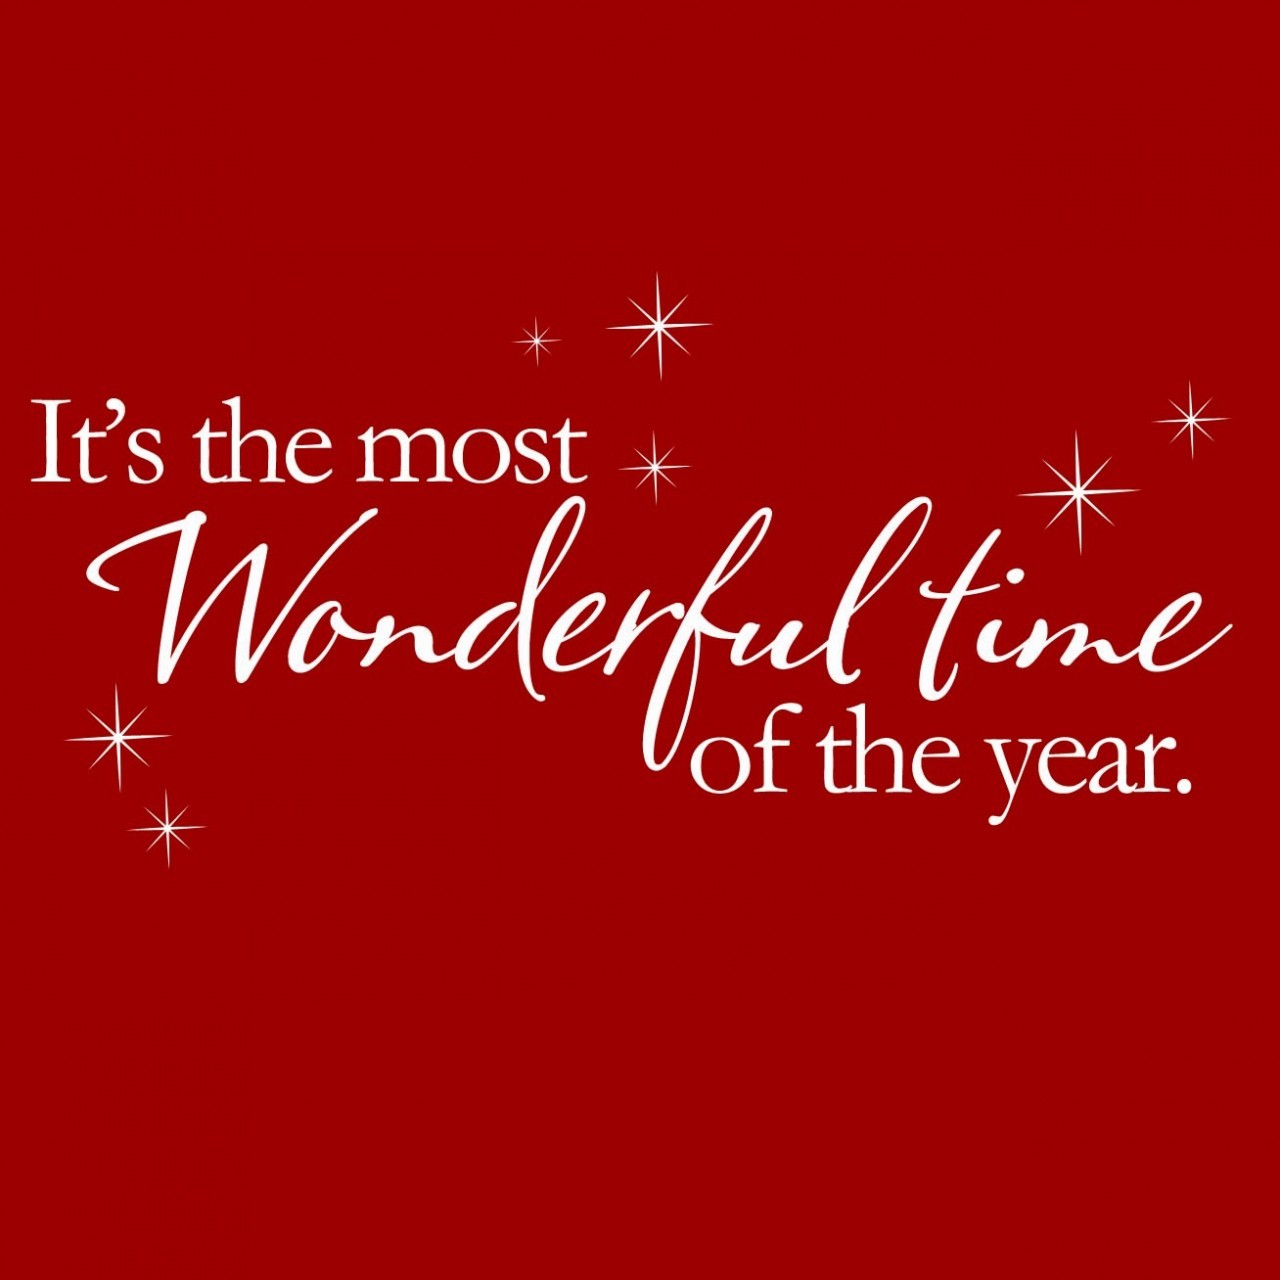 It's The Most Wonderful Time of the Year - photo#15